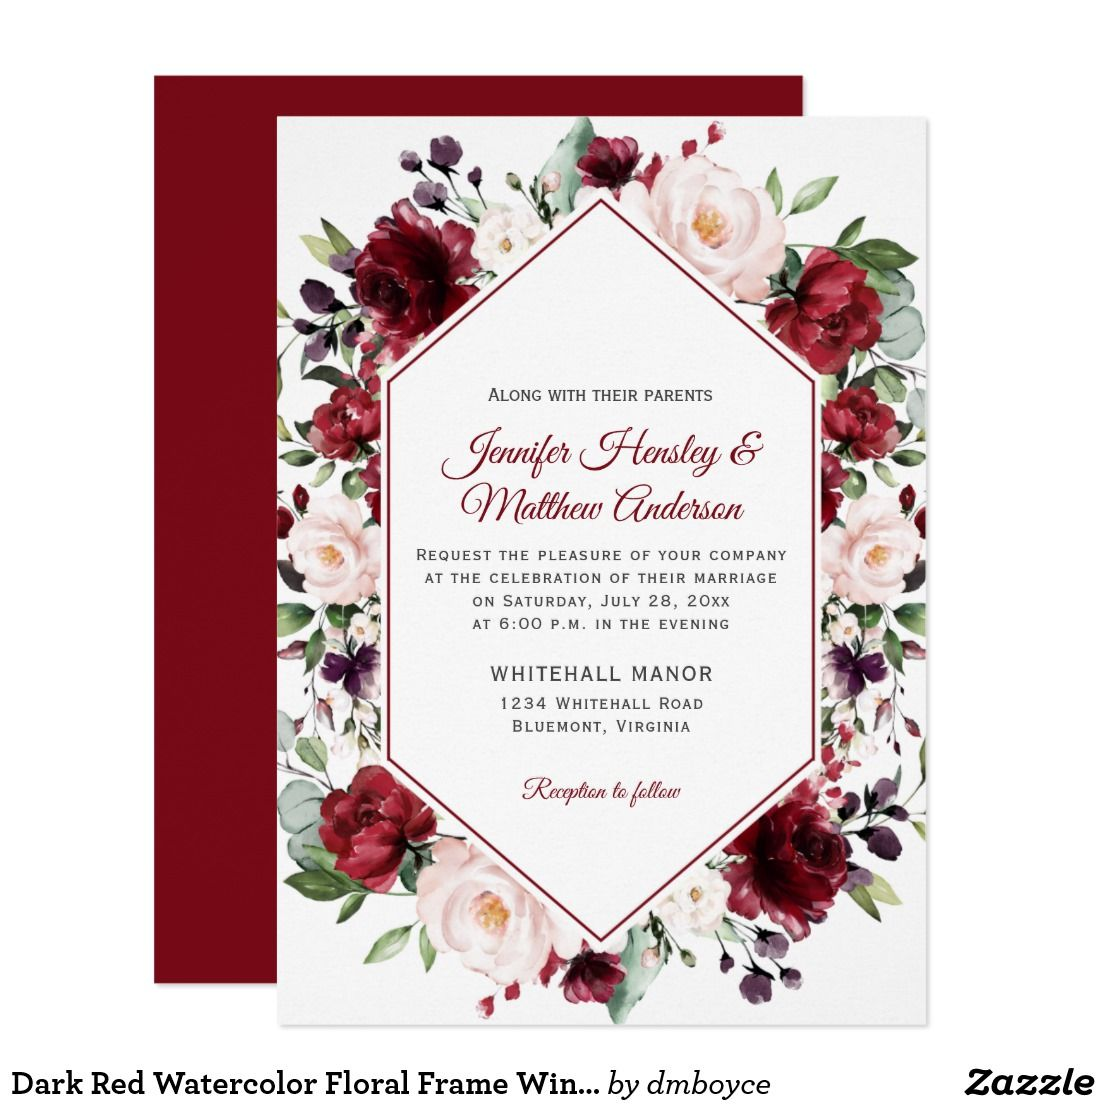 Dark Red Watercolor Floral Frame Winter Wedding Invitation ...